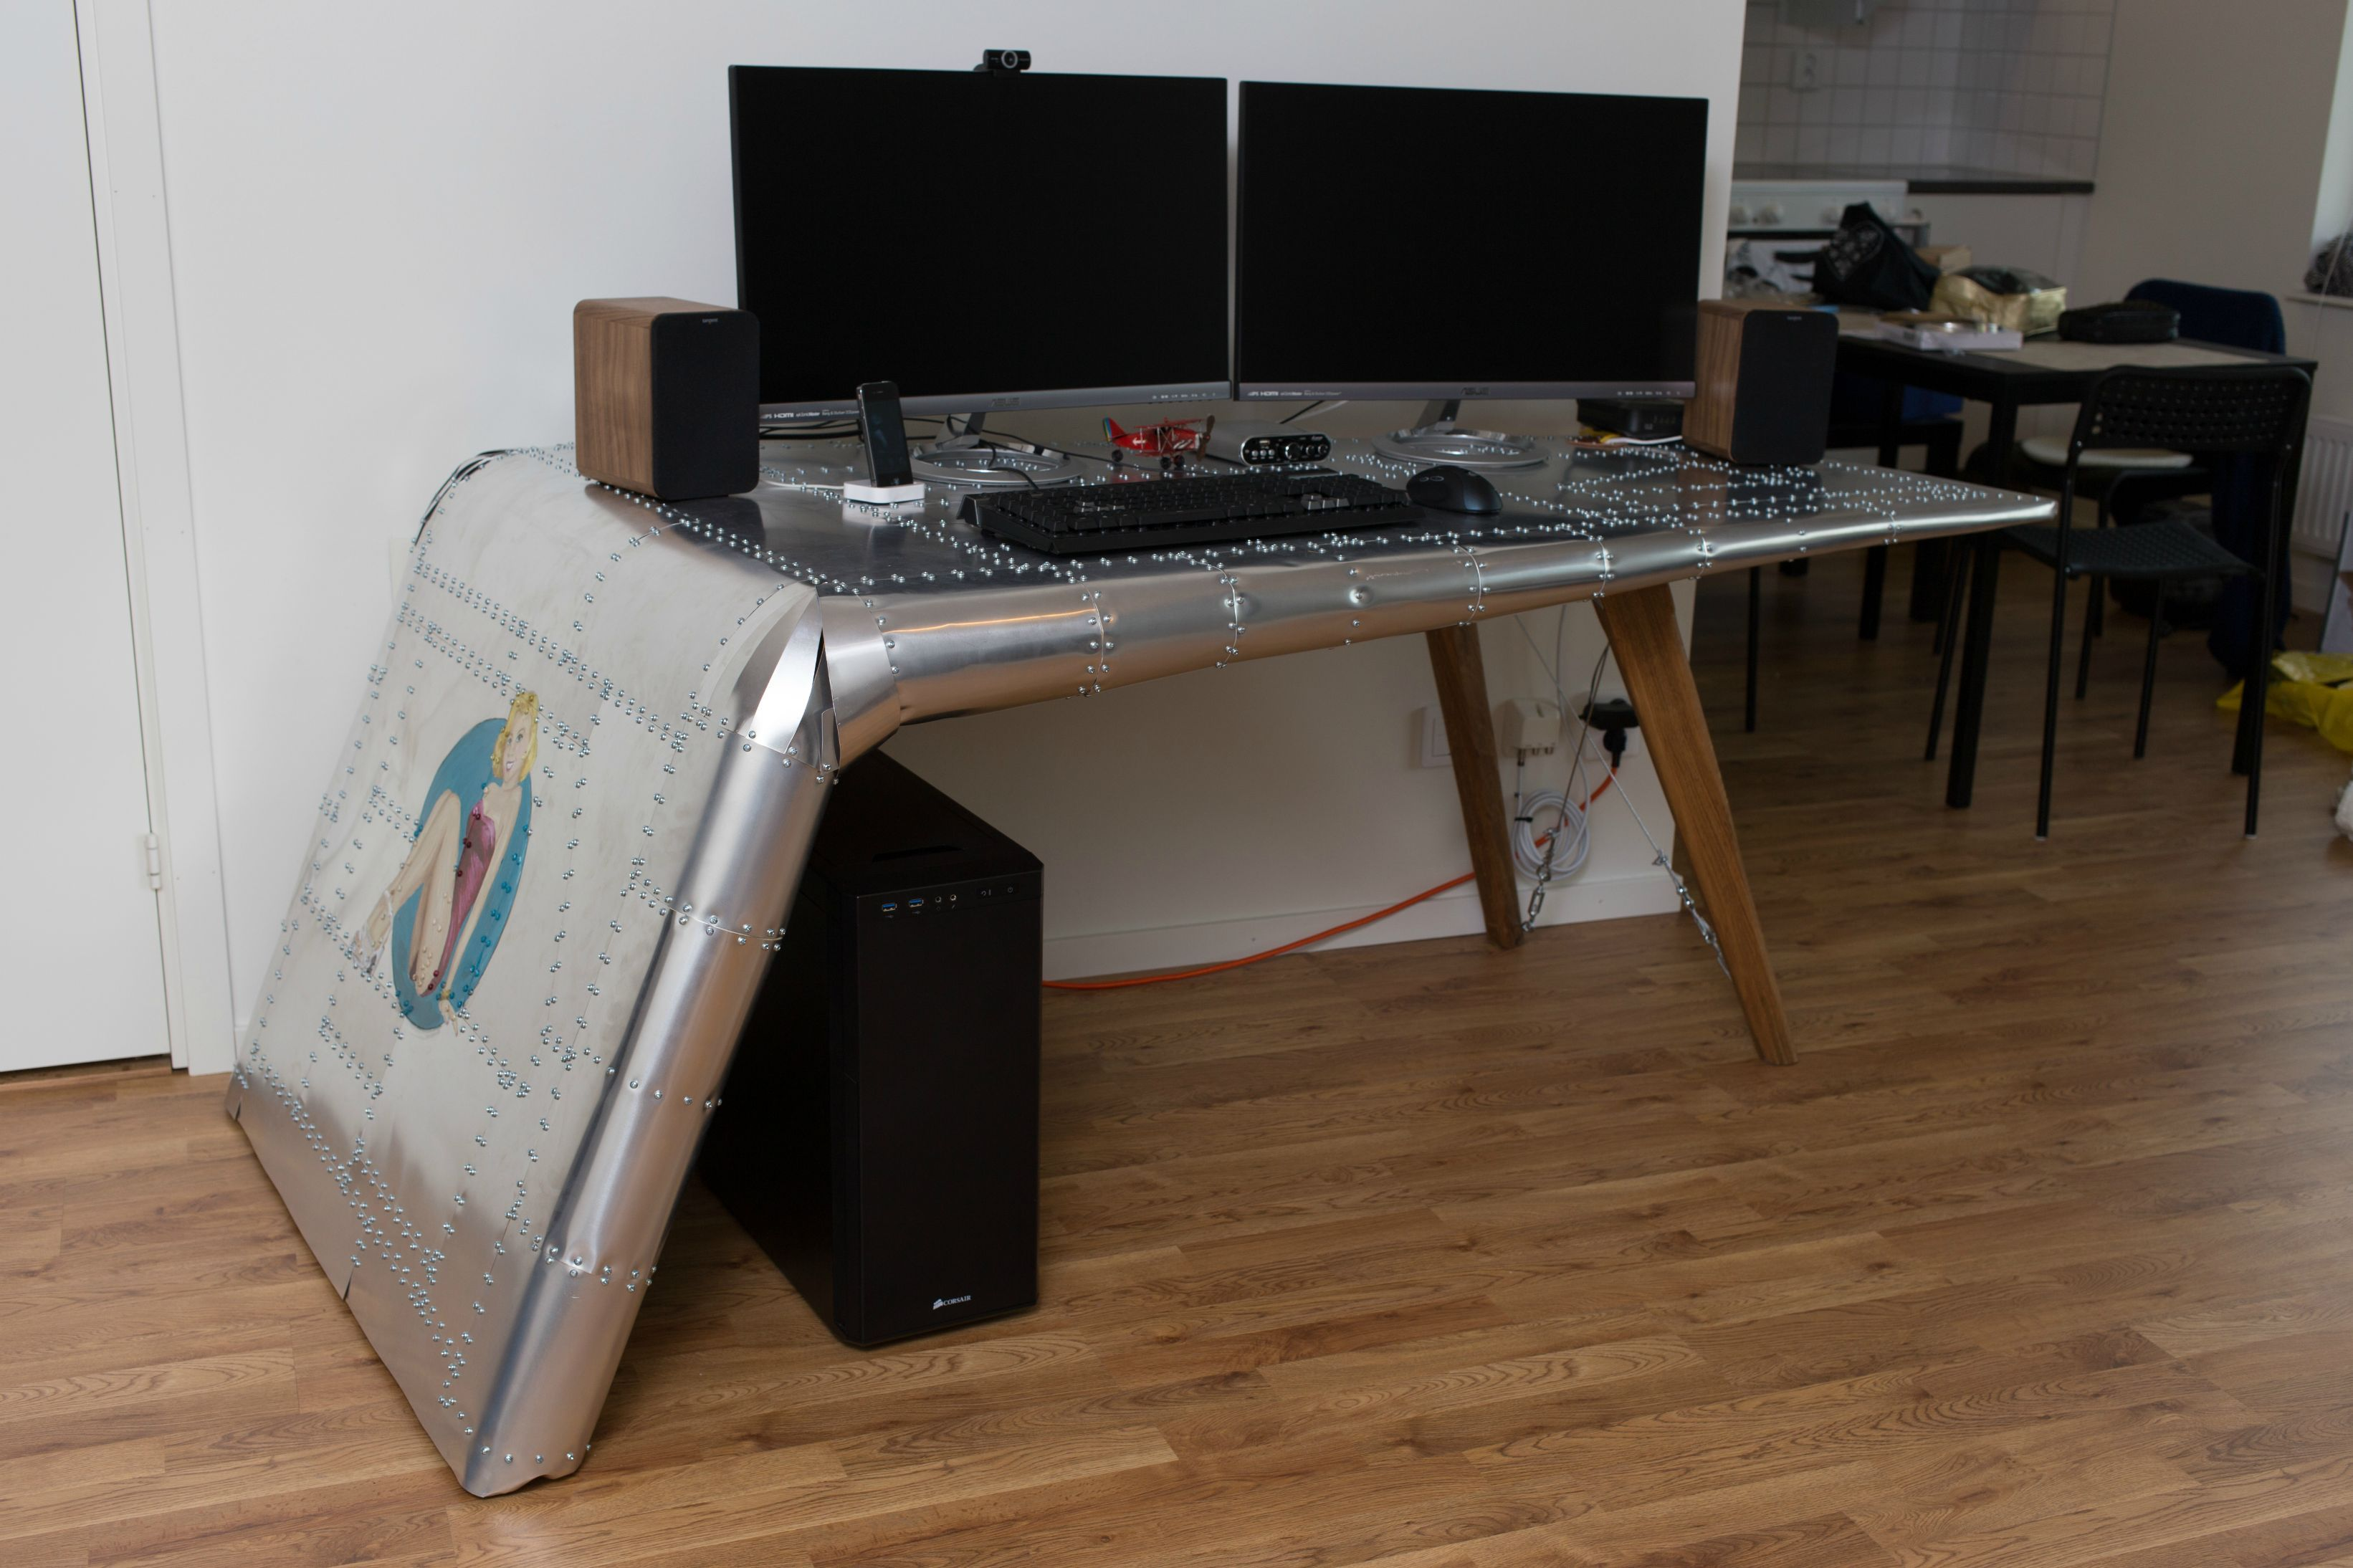 Aviation Themed Desk Part 2 Home